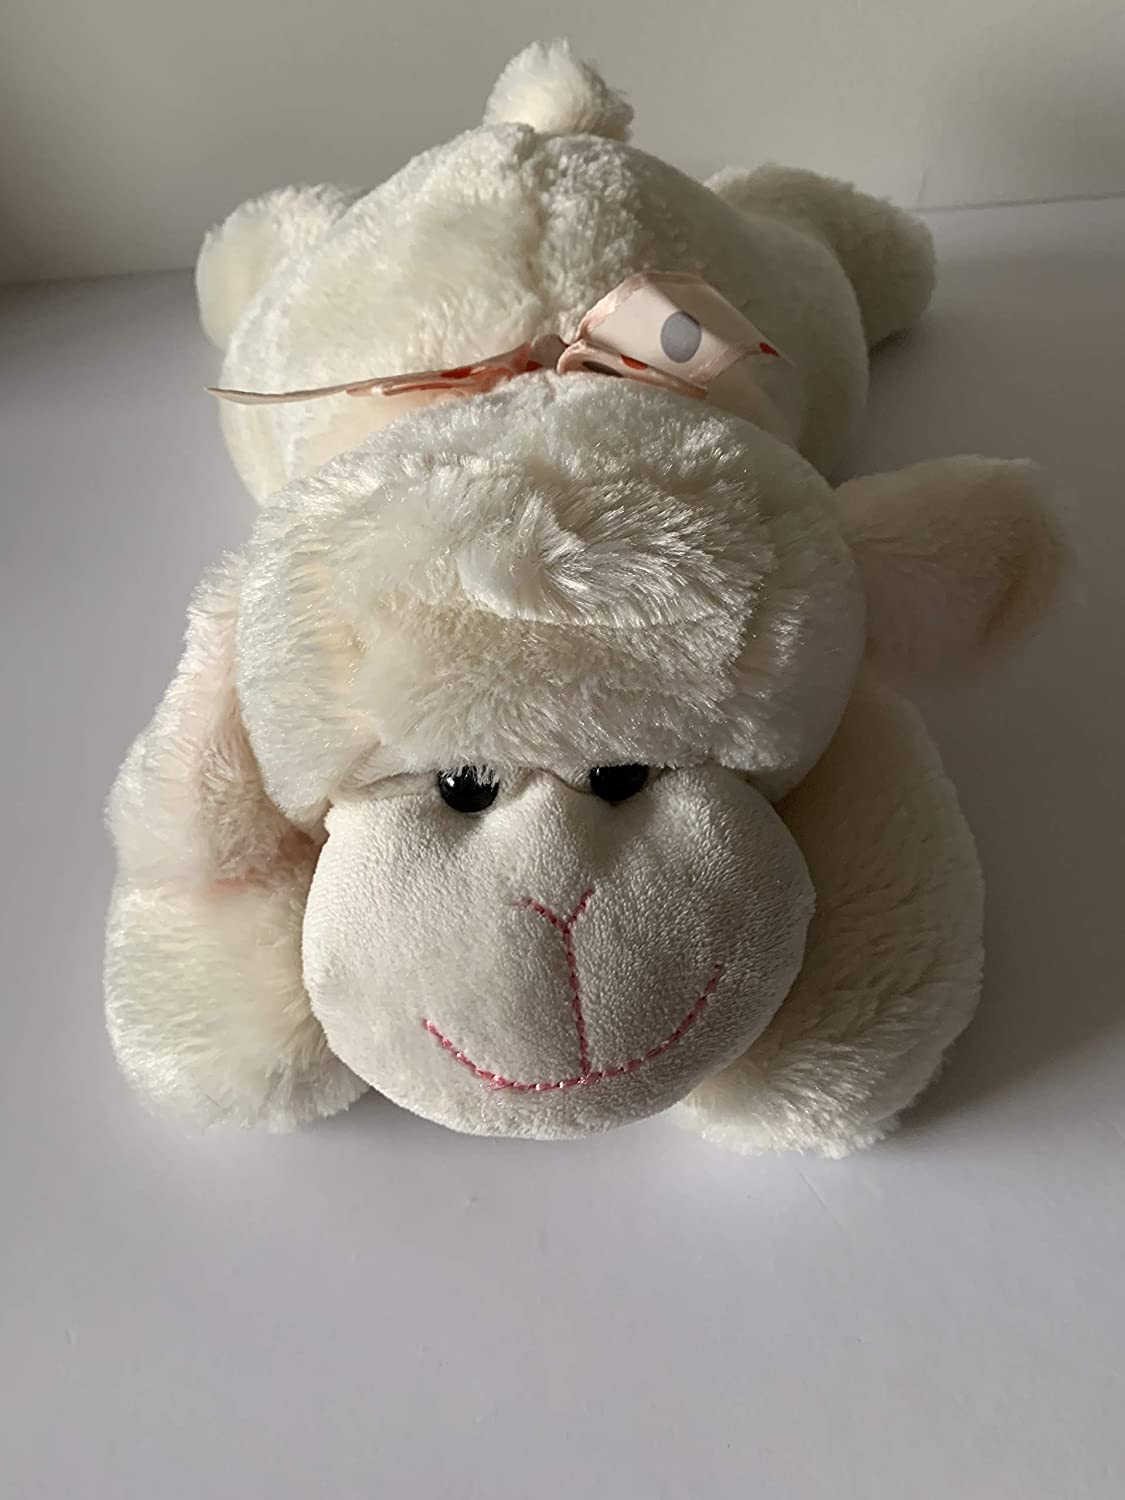 Weighted stuffed animal washable weighted buddy 2 1//2 lbs lamb